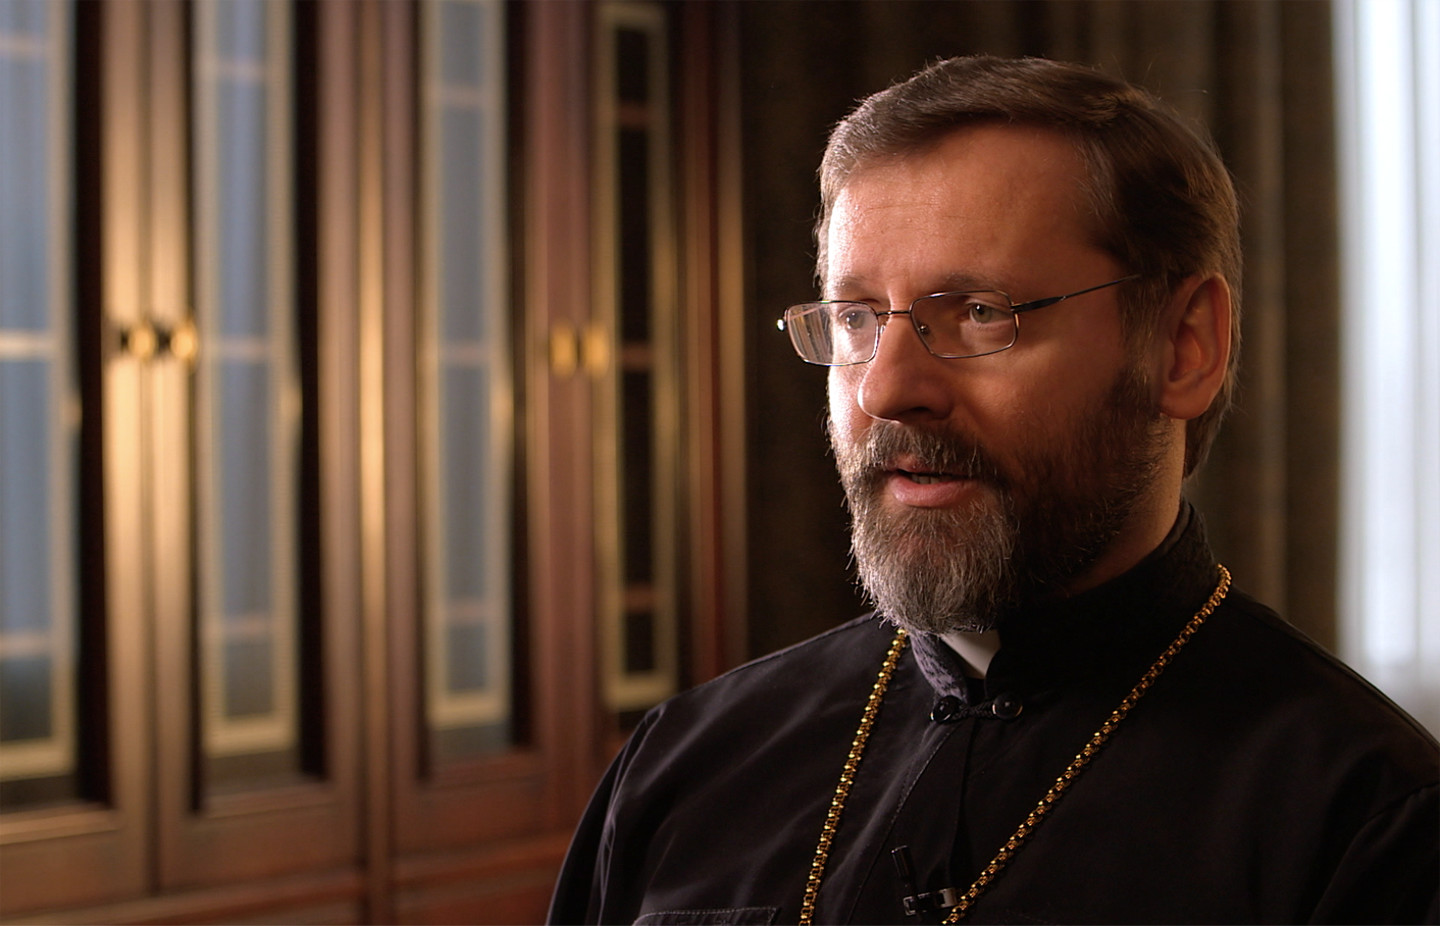 His Beatitude, Sviatoslav Shevchuk, interviewee on John Paul 2: Liberating a Continent, the Fall of Communism.